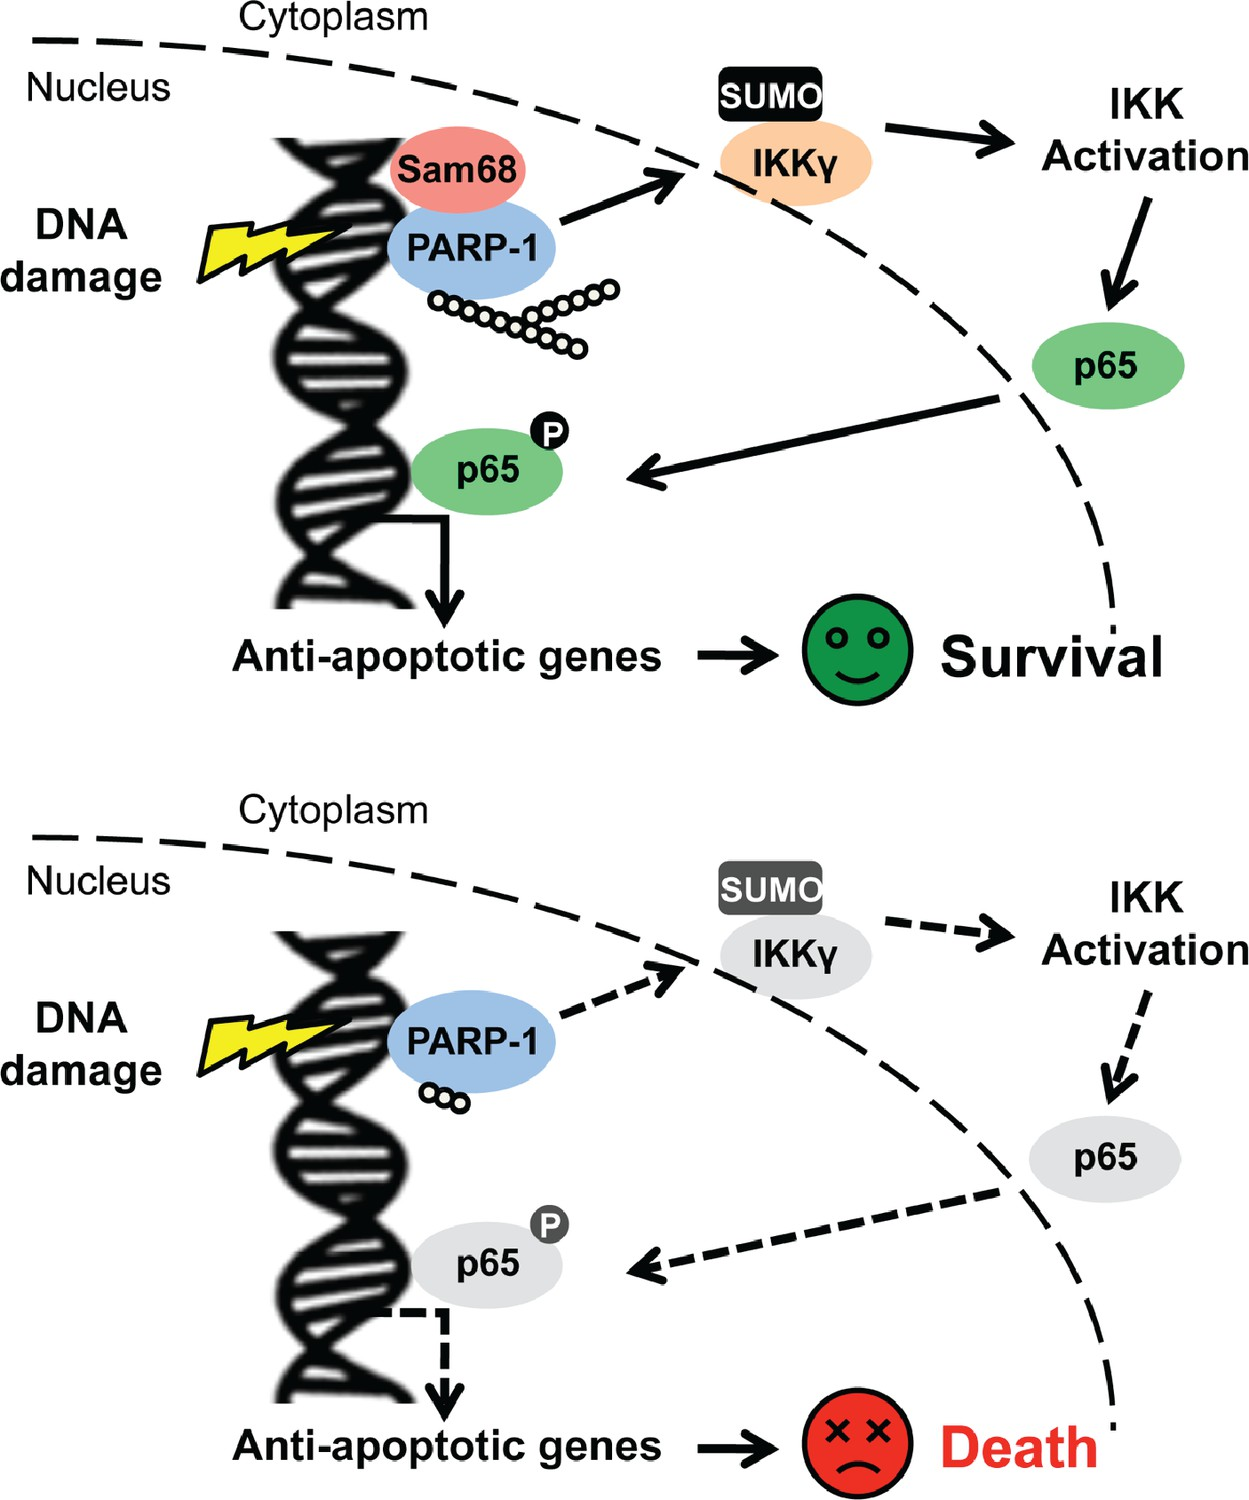 Sam68 Khdrbs1 Is Critical For Colon Tumorigenesis By Regulating Romans 8 Block Diagram Schematic Model Representation Of Functioning As An Early Signaling Molecule In Genotoxic Stress Initiated Nf B Pathway